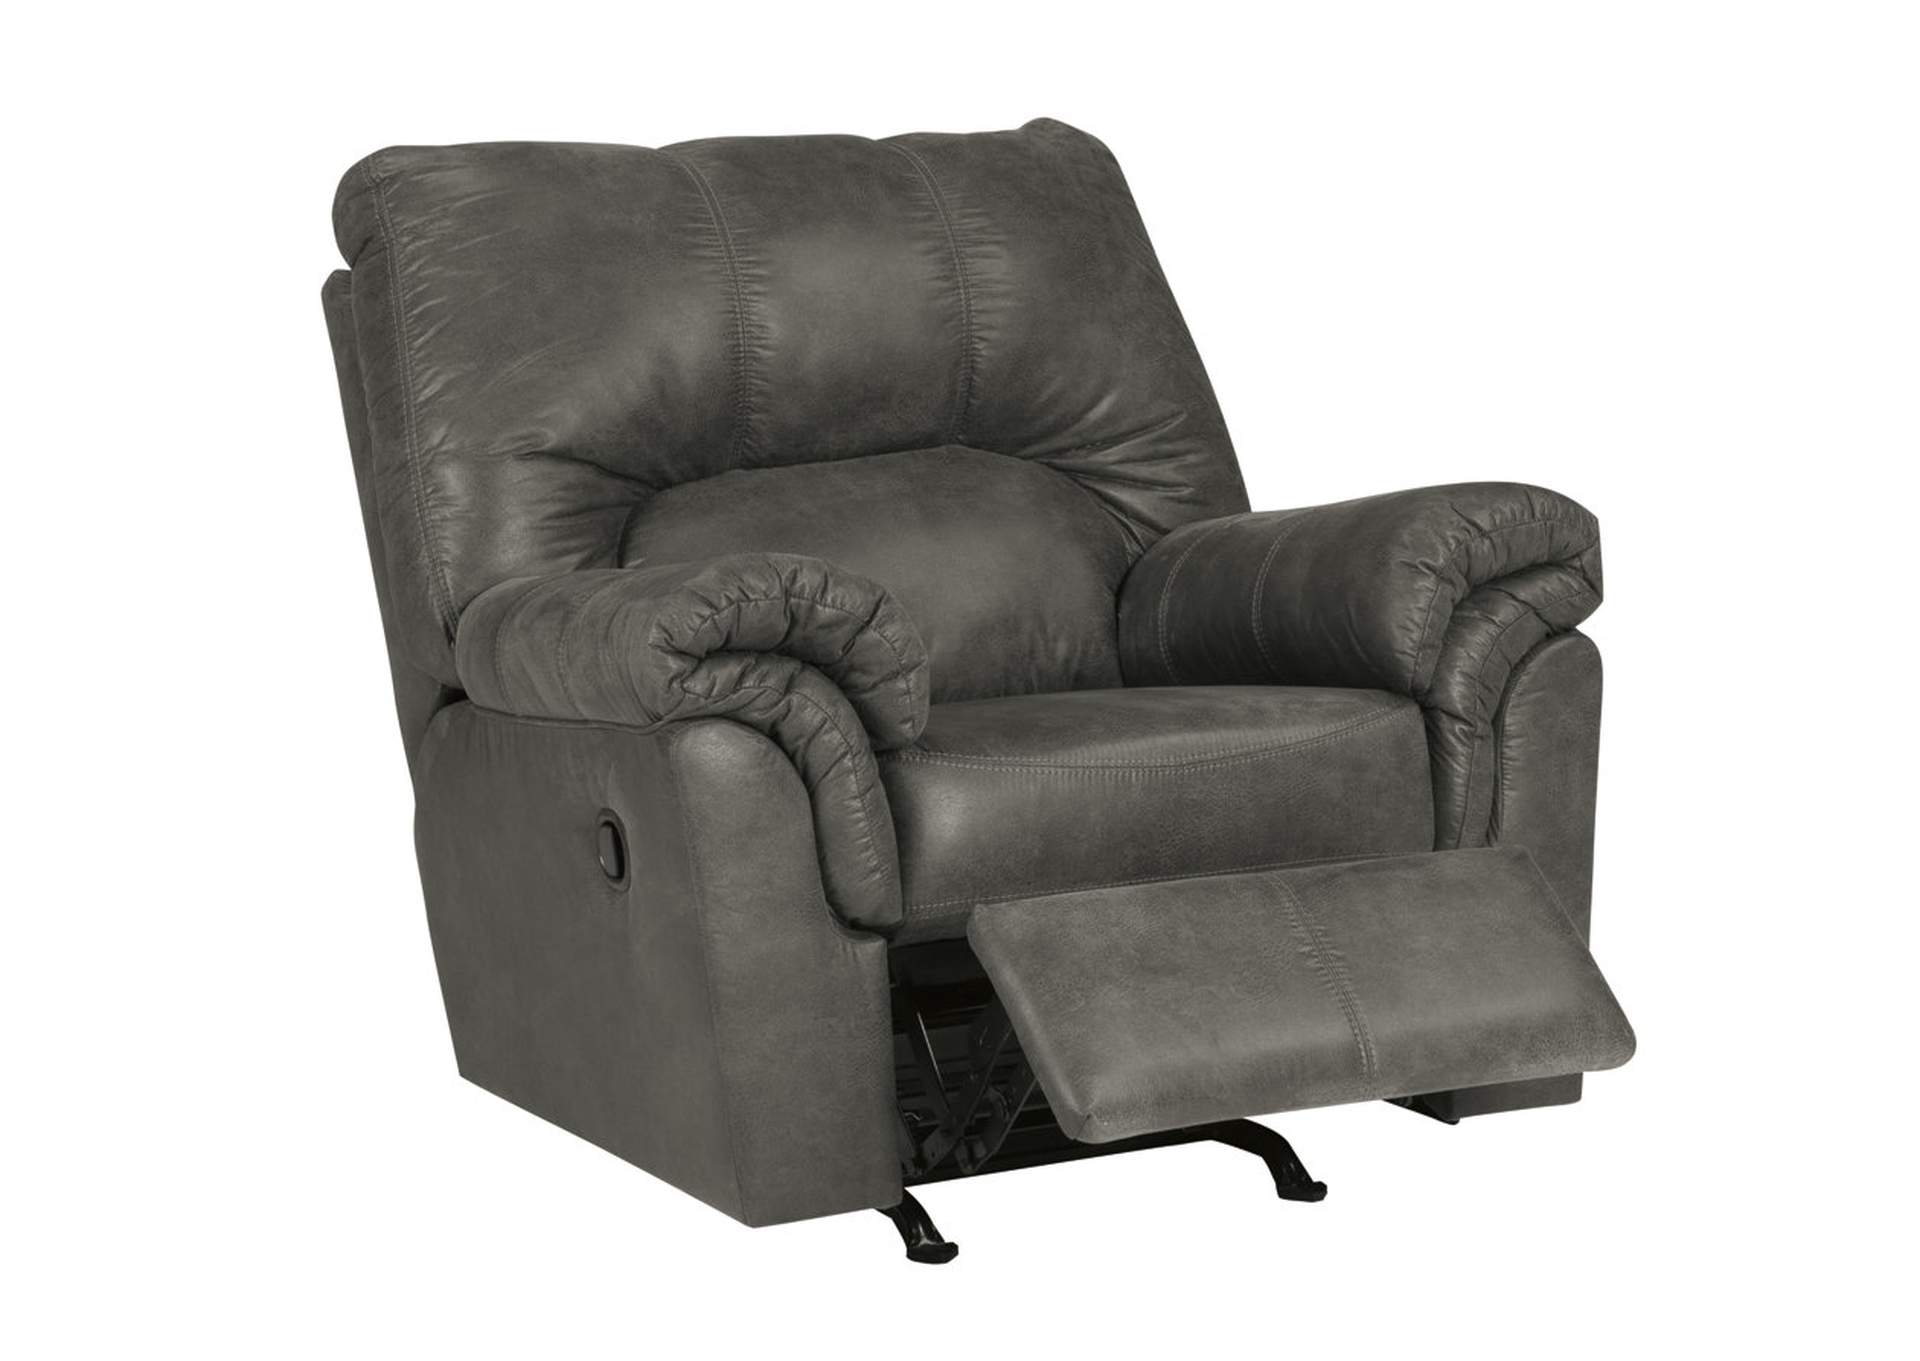 Bladen Slate Rocker Recliner,ABF Signature Design by Ashley